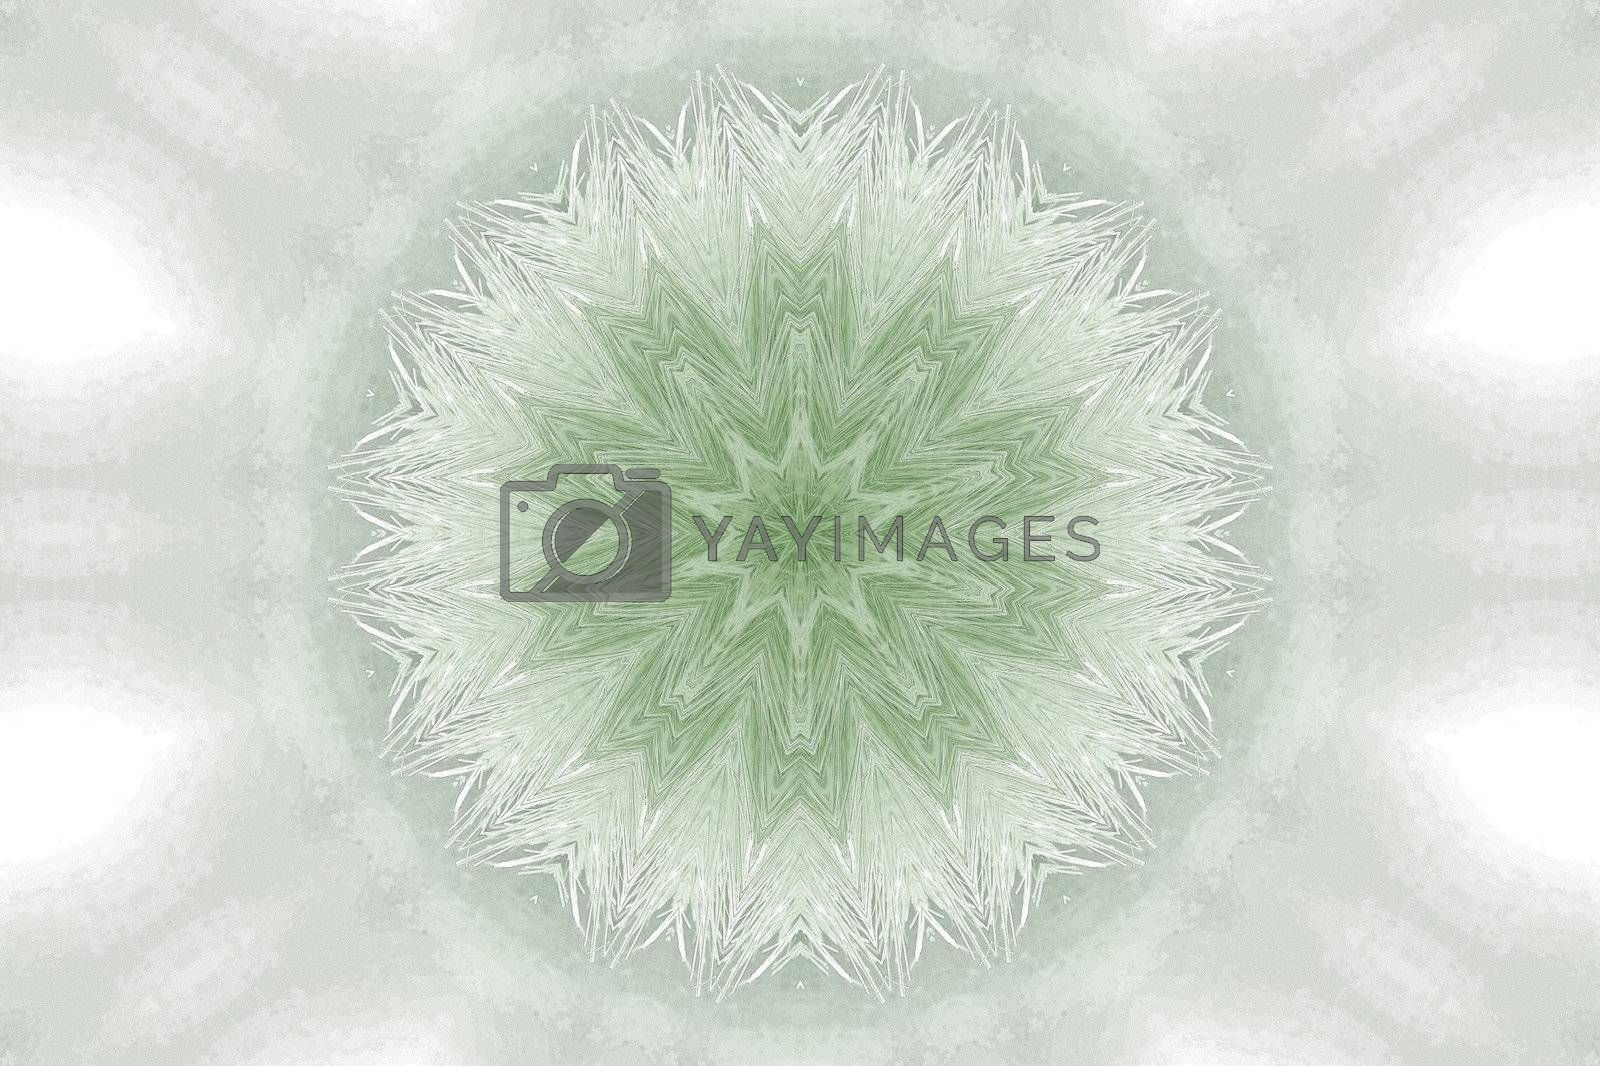 Royalty free image of abstract design by leafy